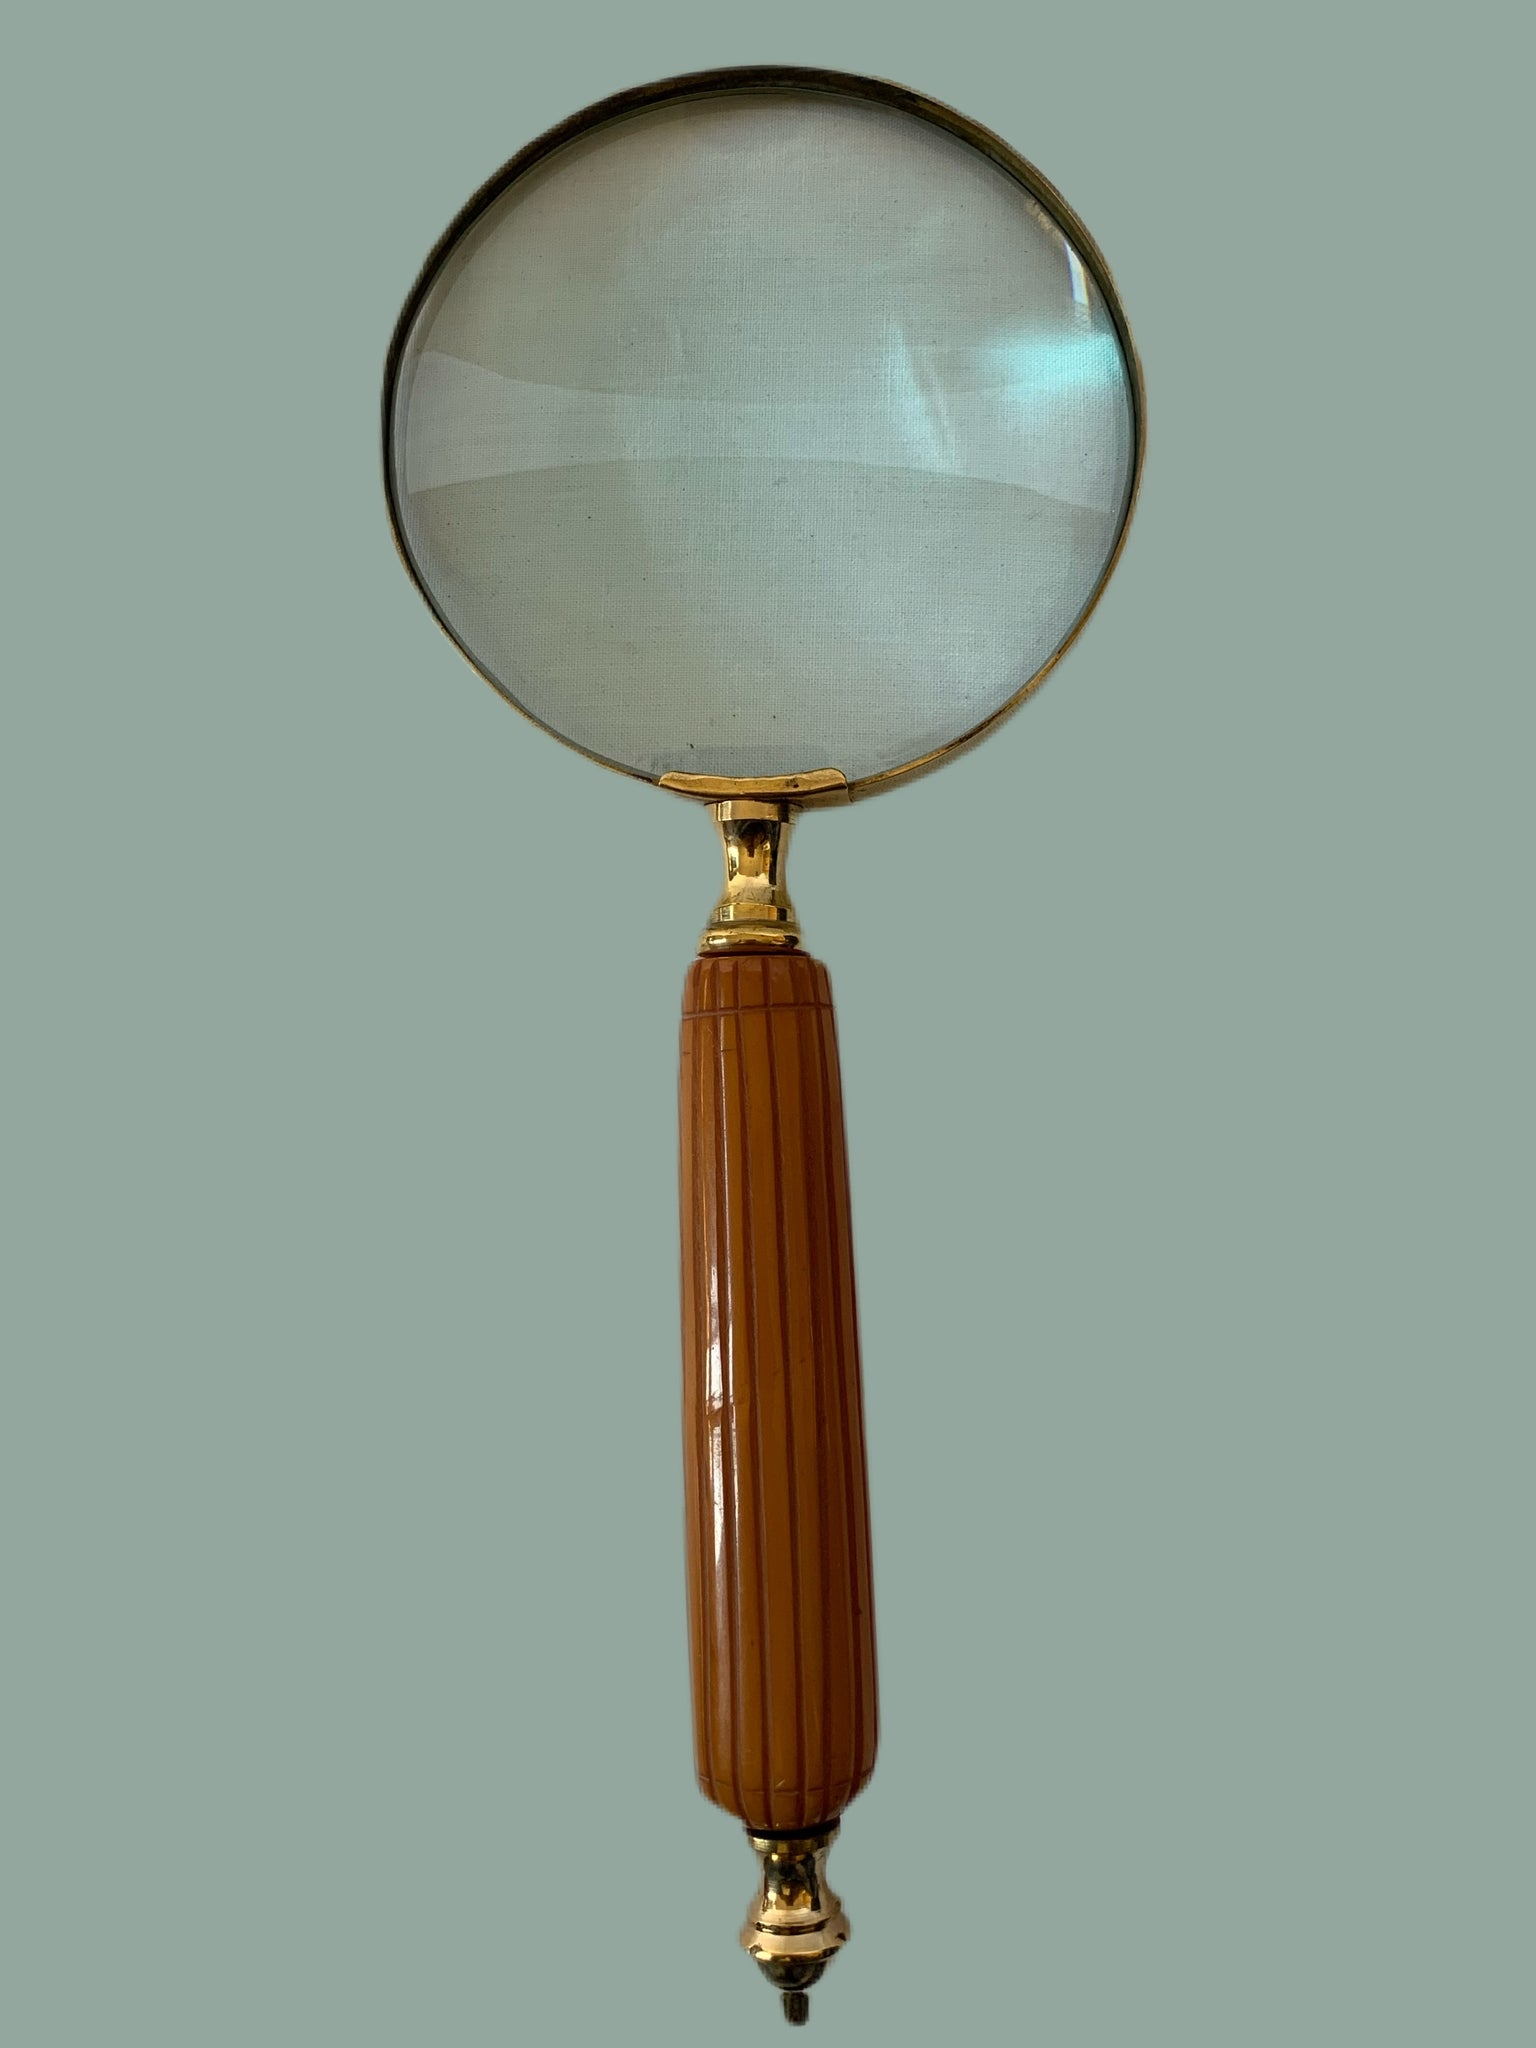 Brown handle Magnifier